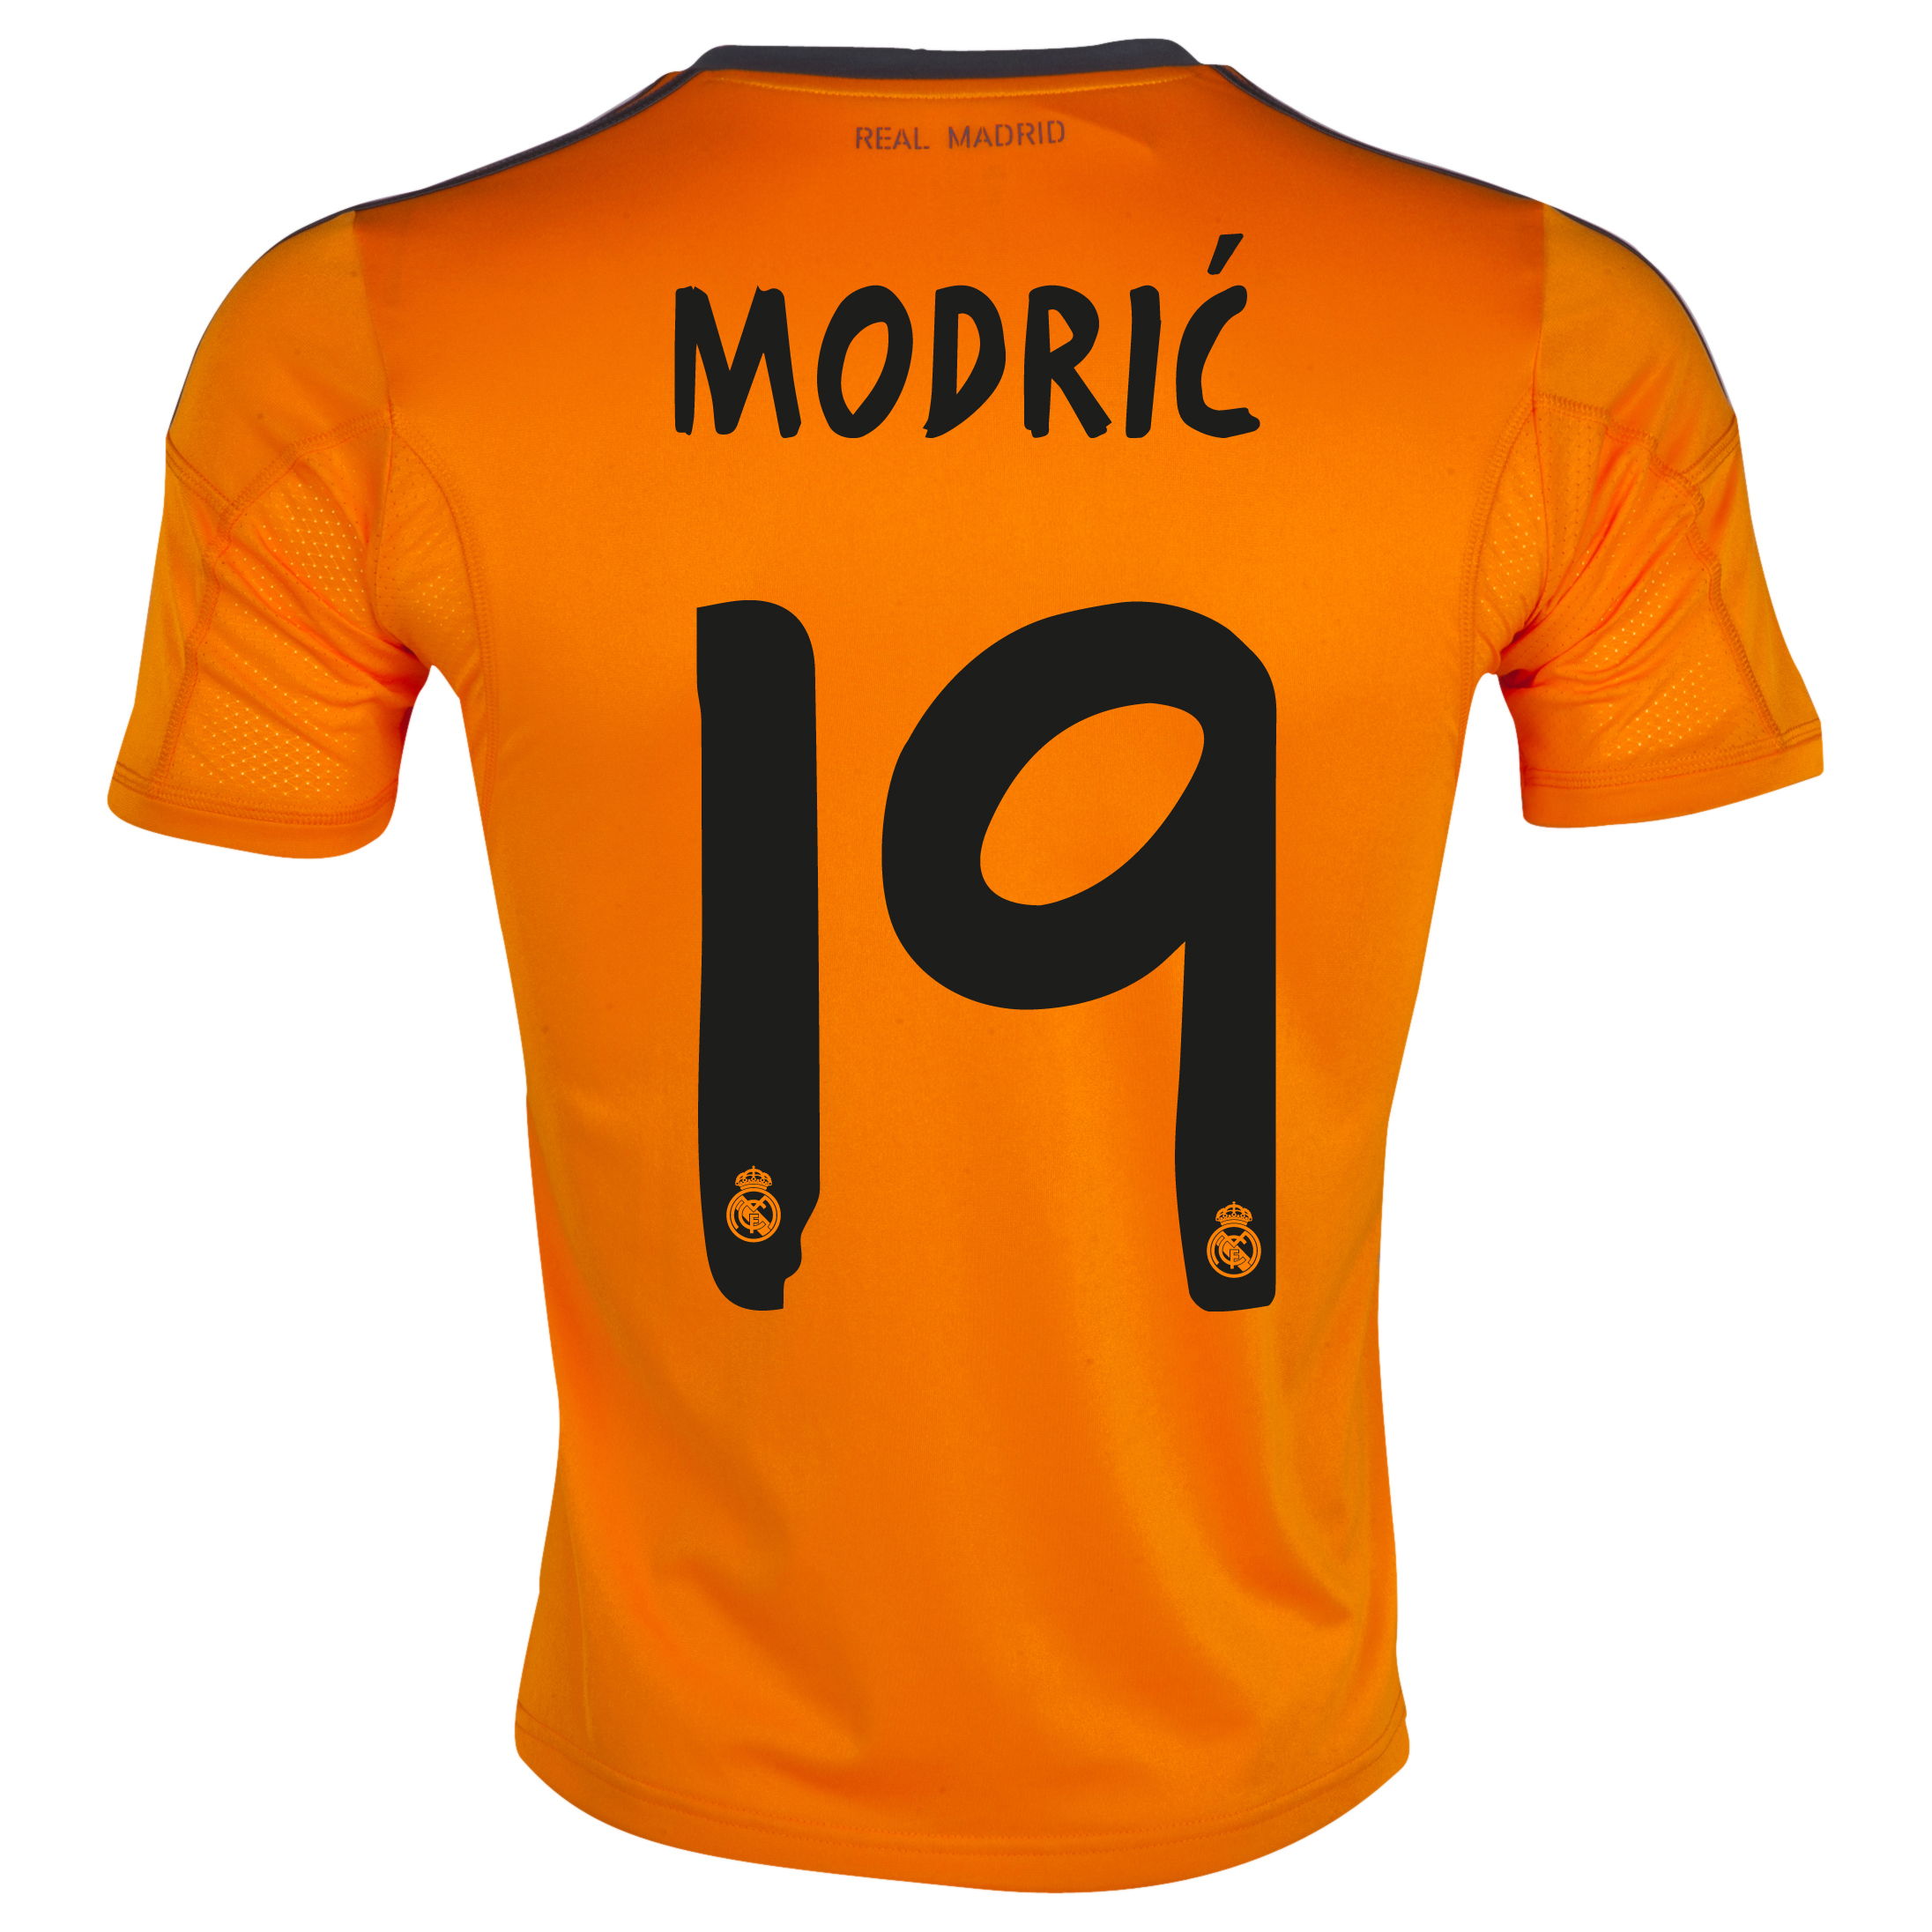 Real Madrid Third Shirt 2013/14 with Modric 19 printing